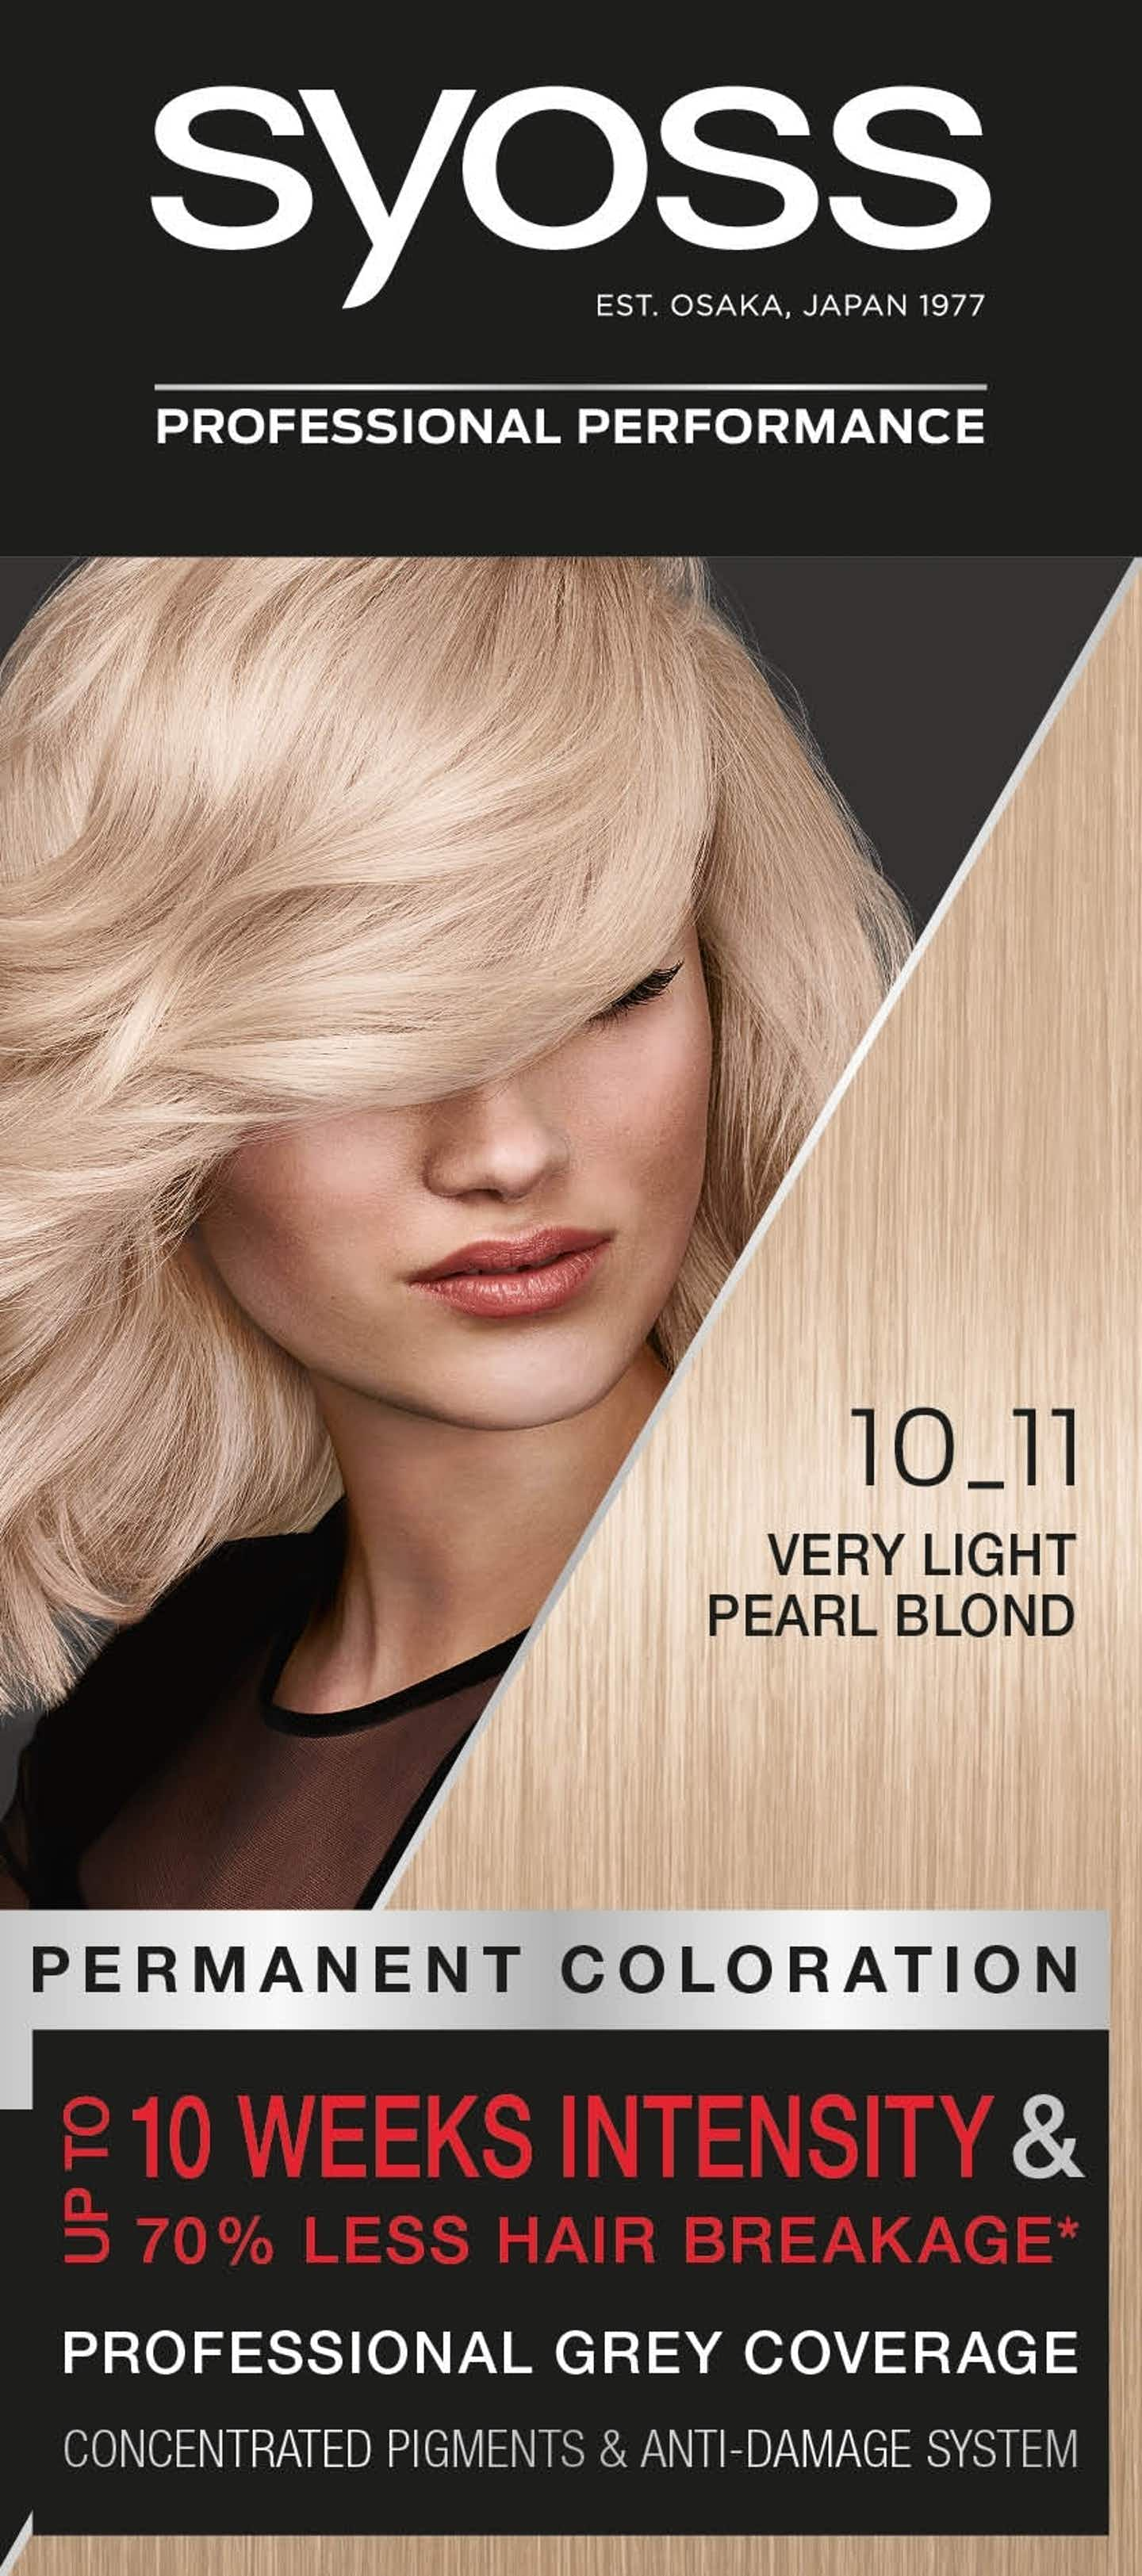 Syoss Permanent Coloration 10_11 Very Light Pearl Blonde